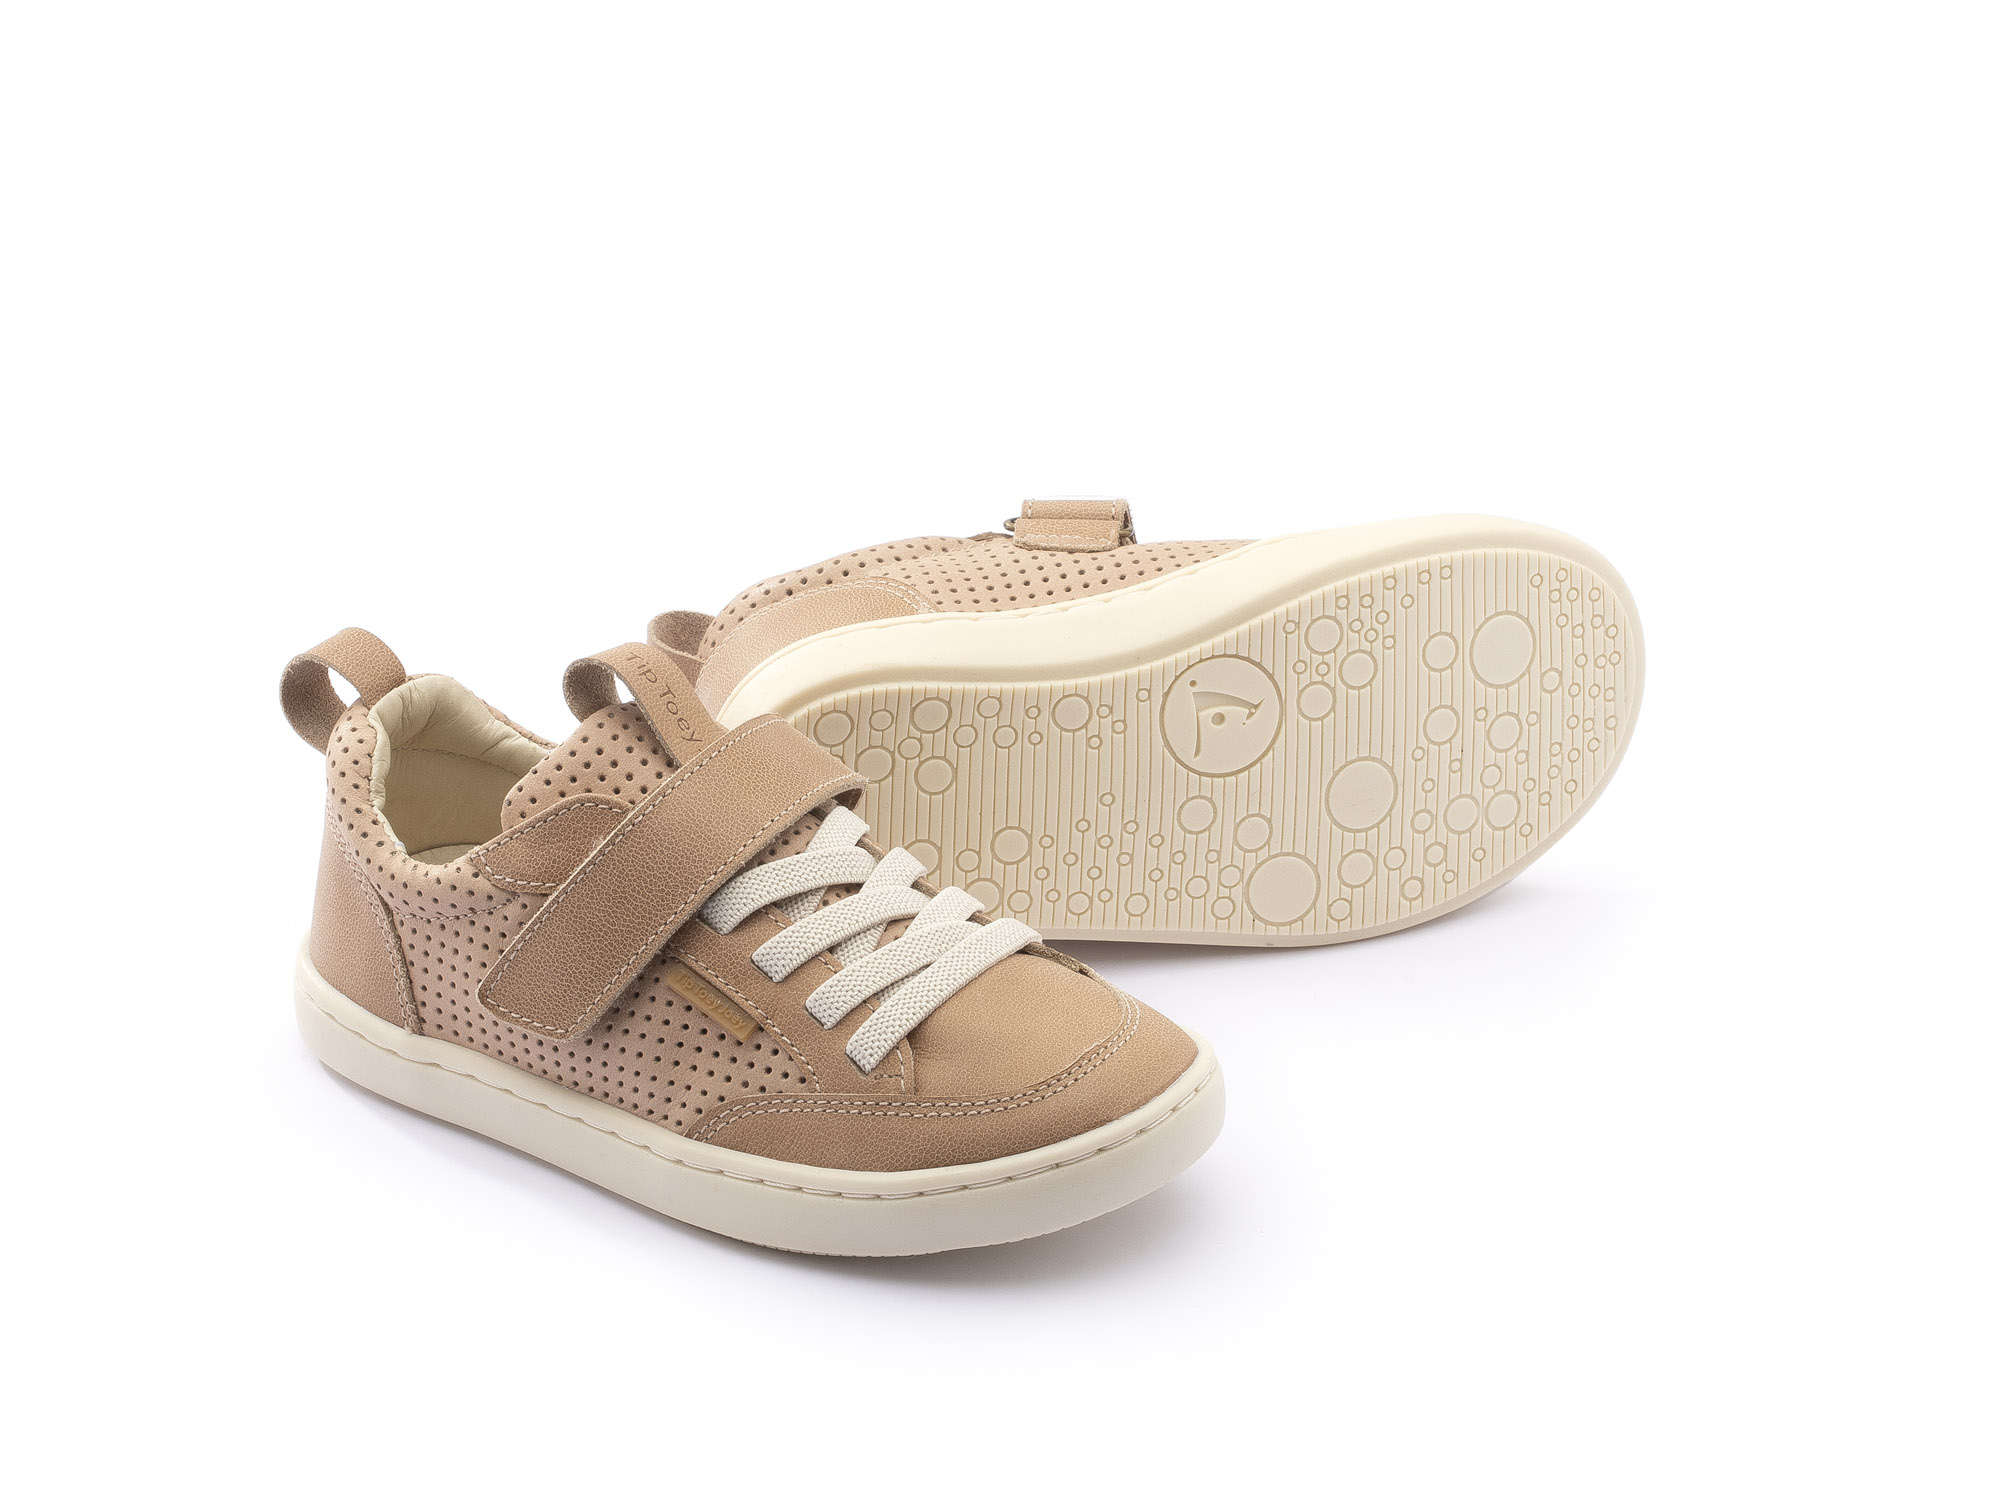 Sneaker Casual Little Urban Sand/ Sand Holes Toddler 2 à 4 anos - 1